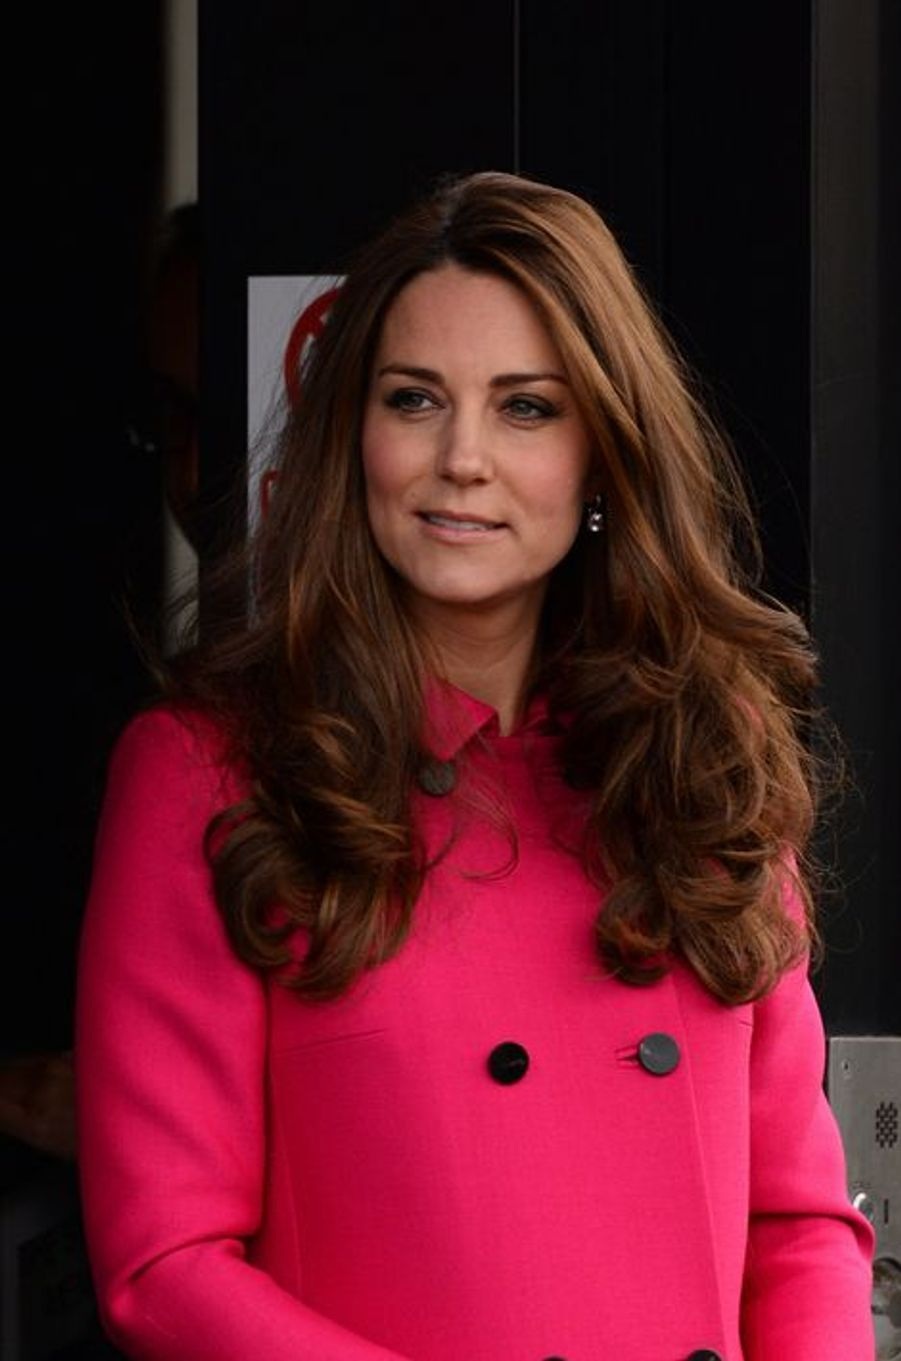 Kate née Middleton au Stephen Lawrence Centre à Londres, le 27 mars 2015